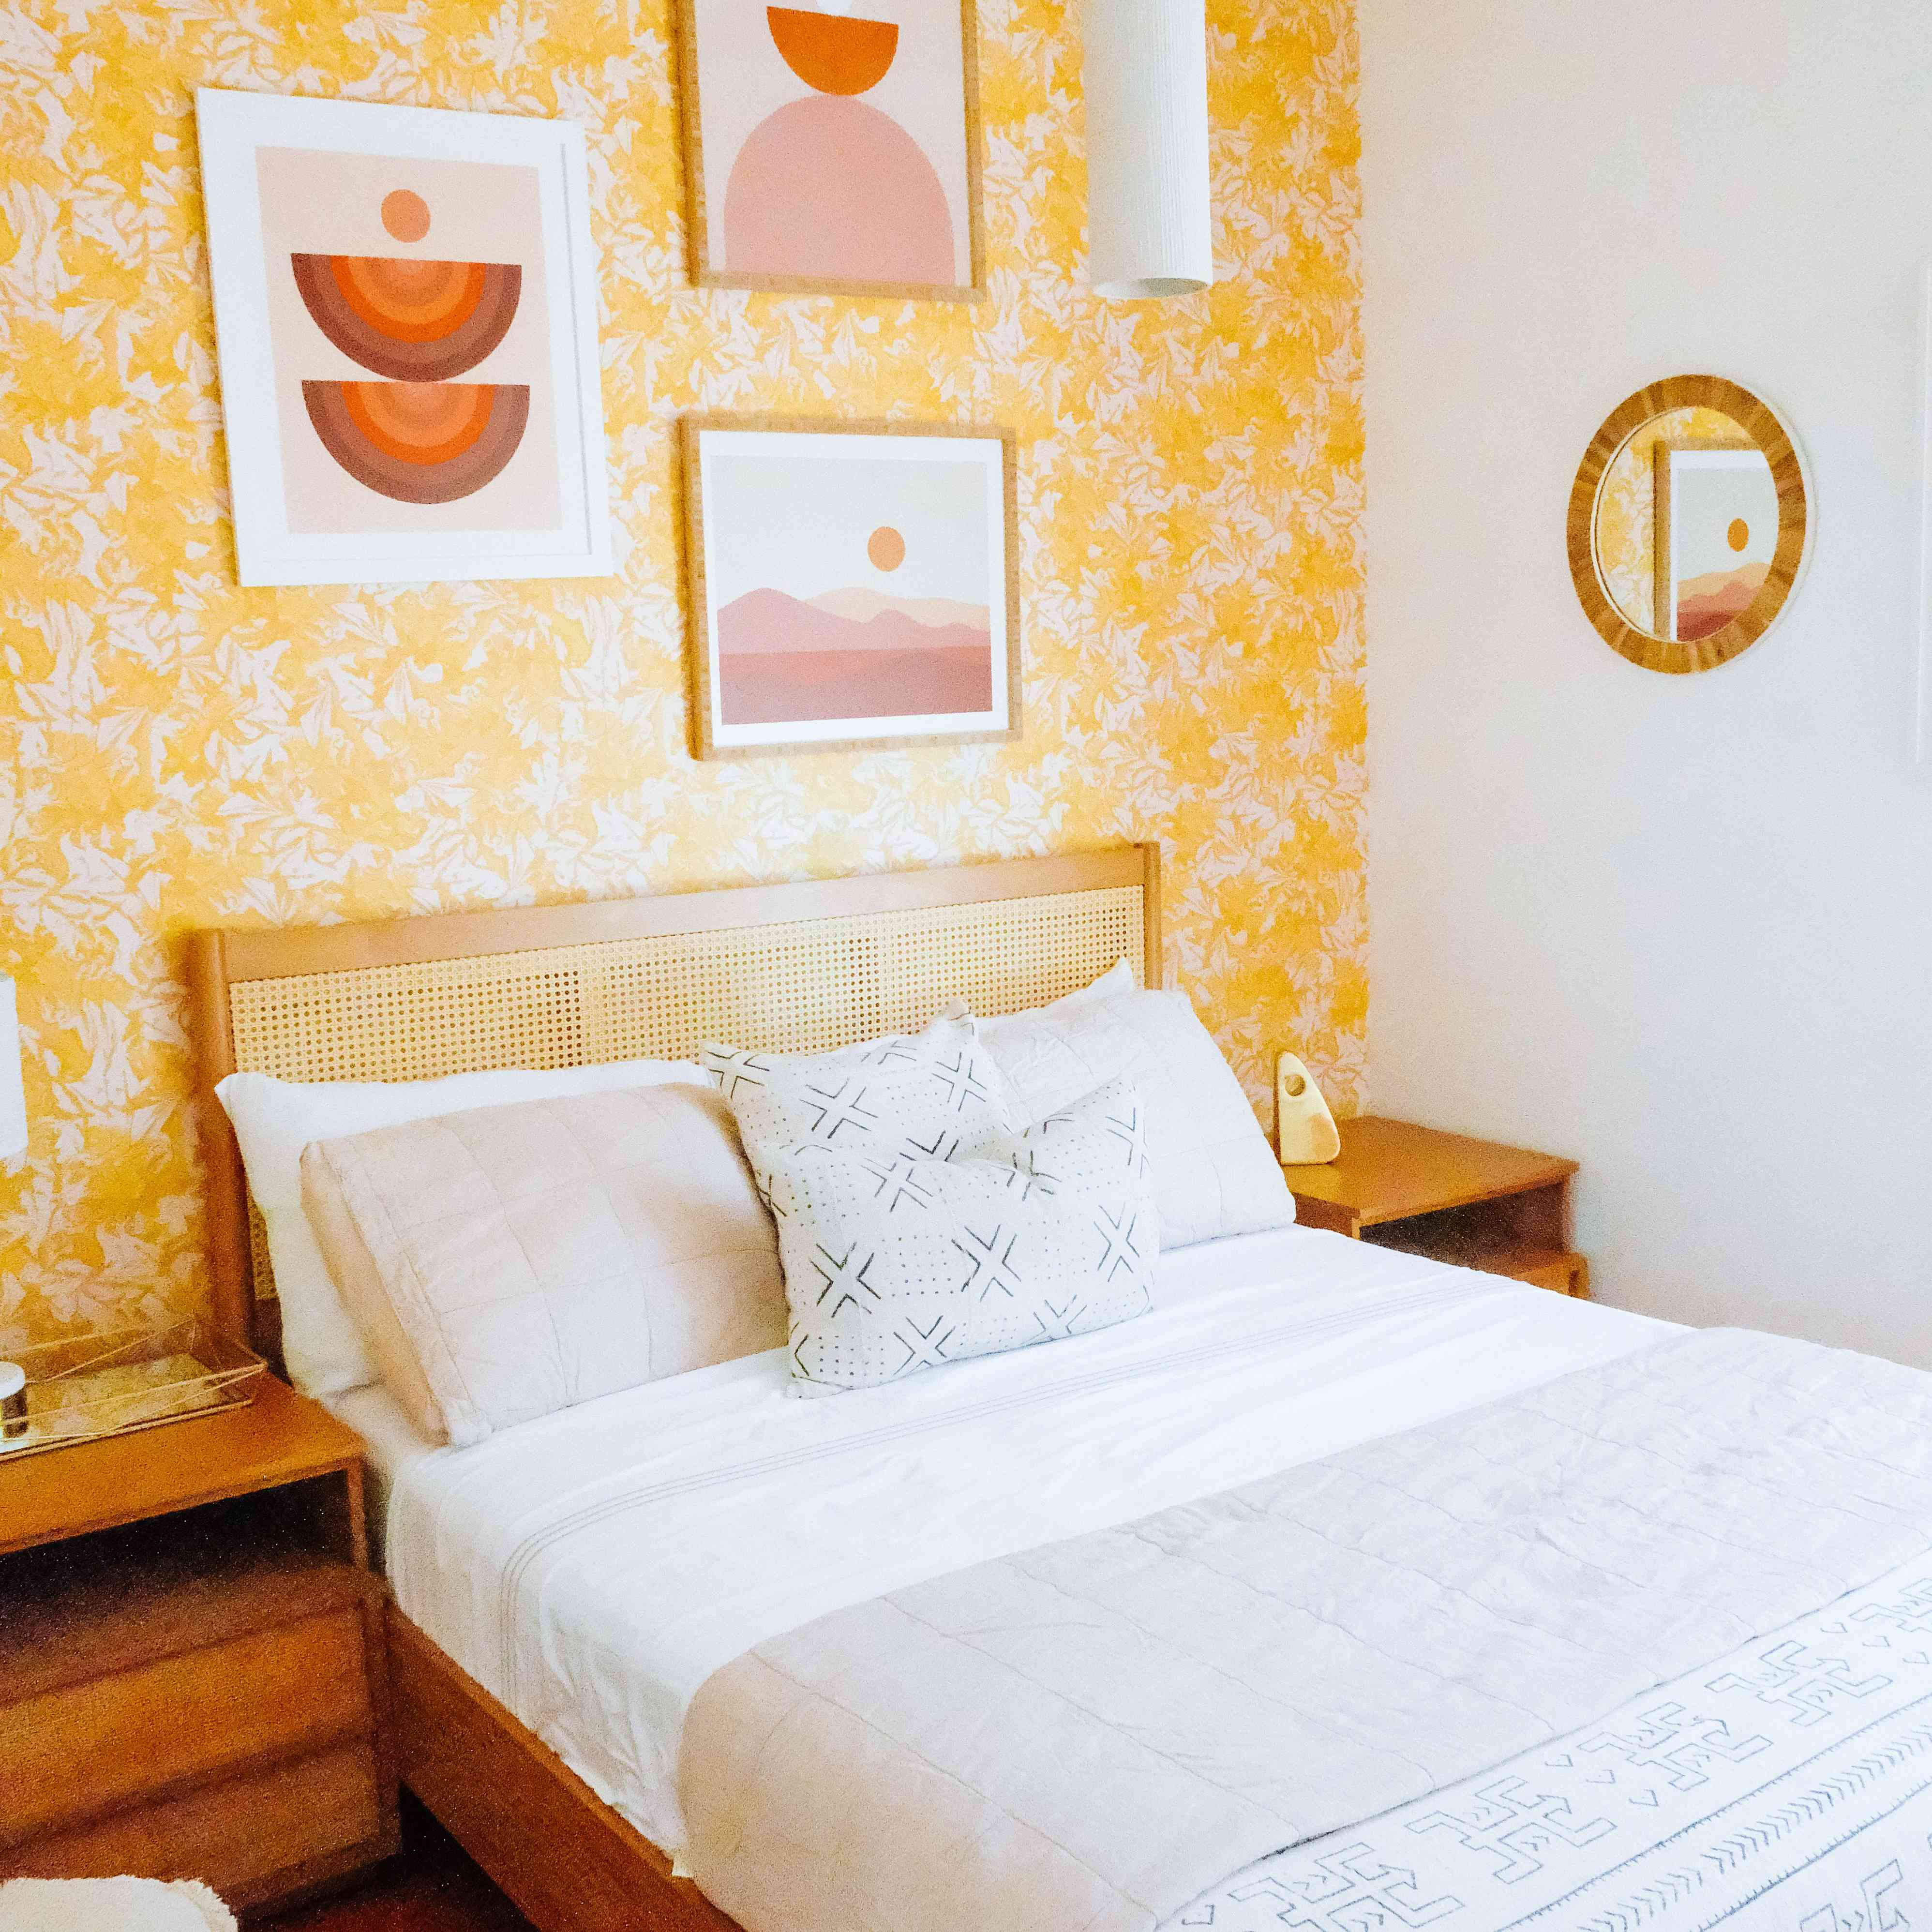 bedroom with floral yellow wallpaper, accented with red and orange tones, wicker and wood furniture